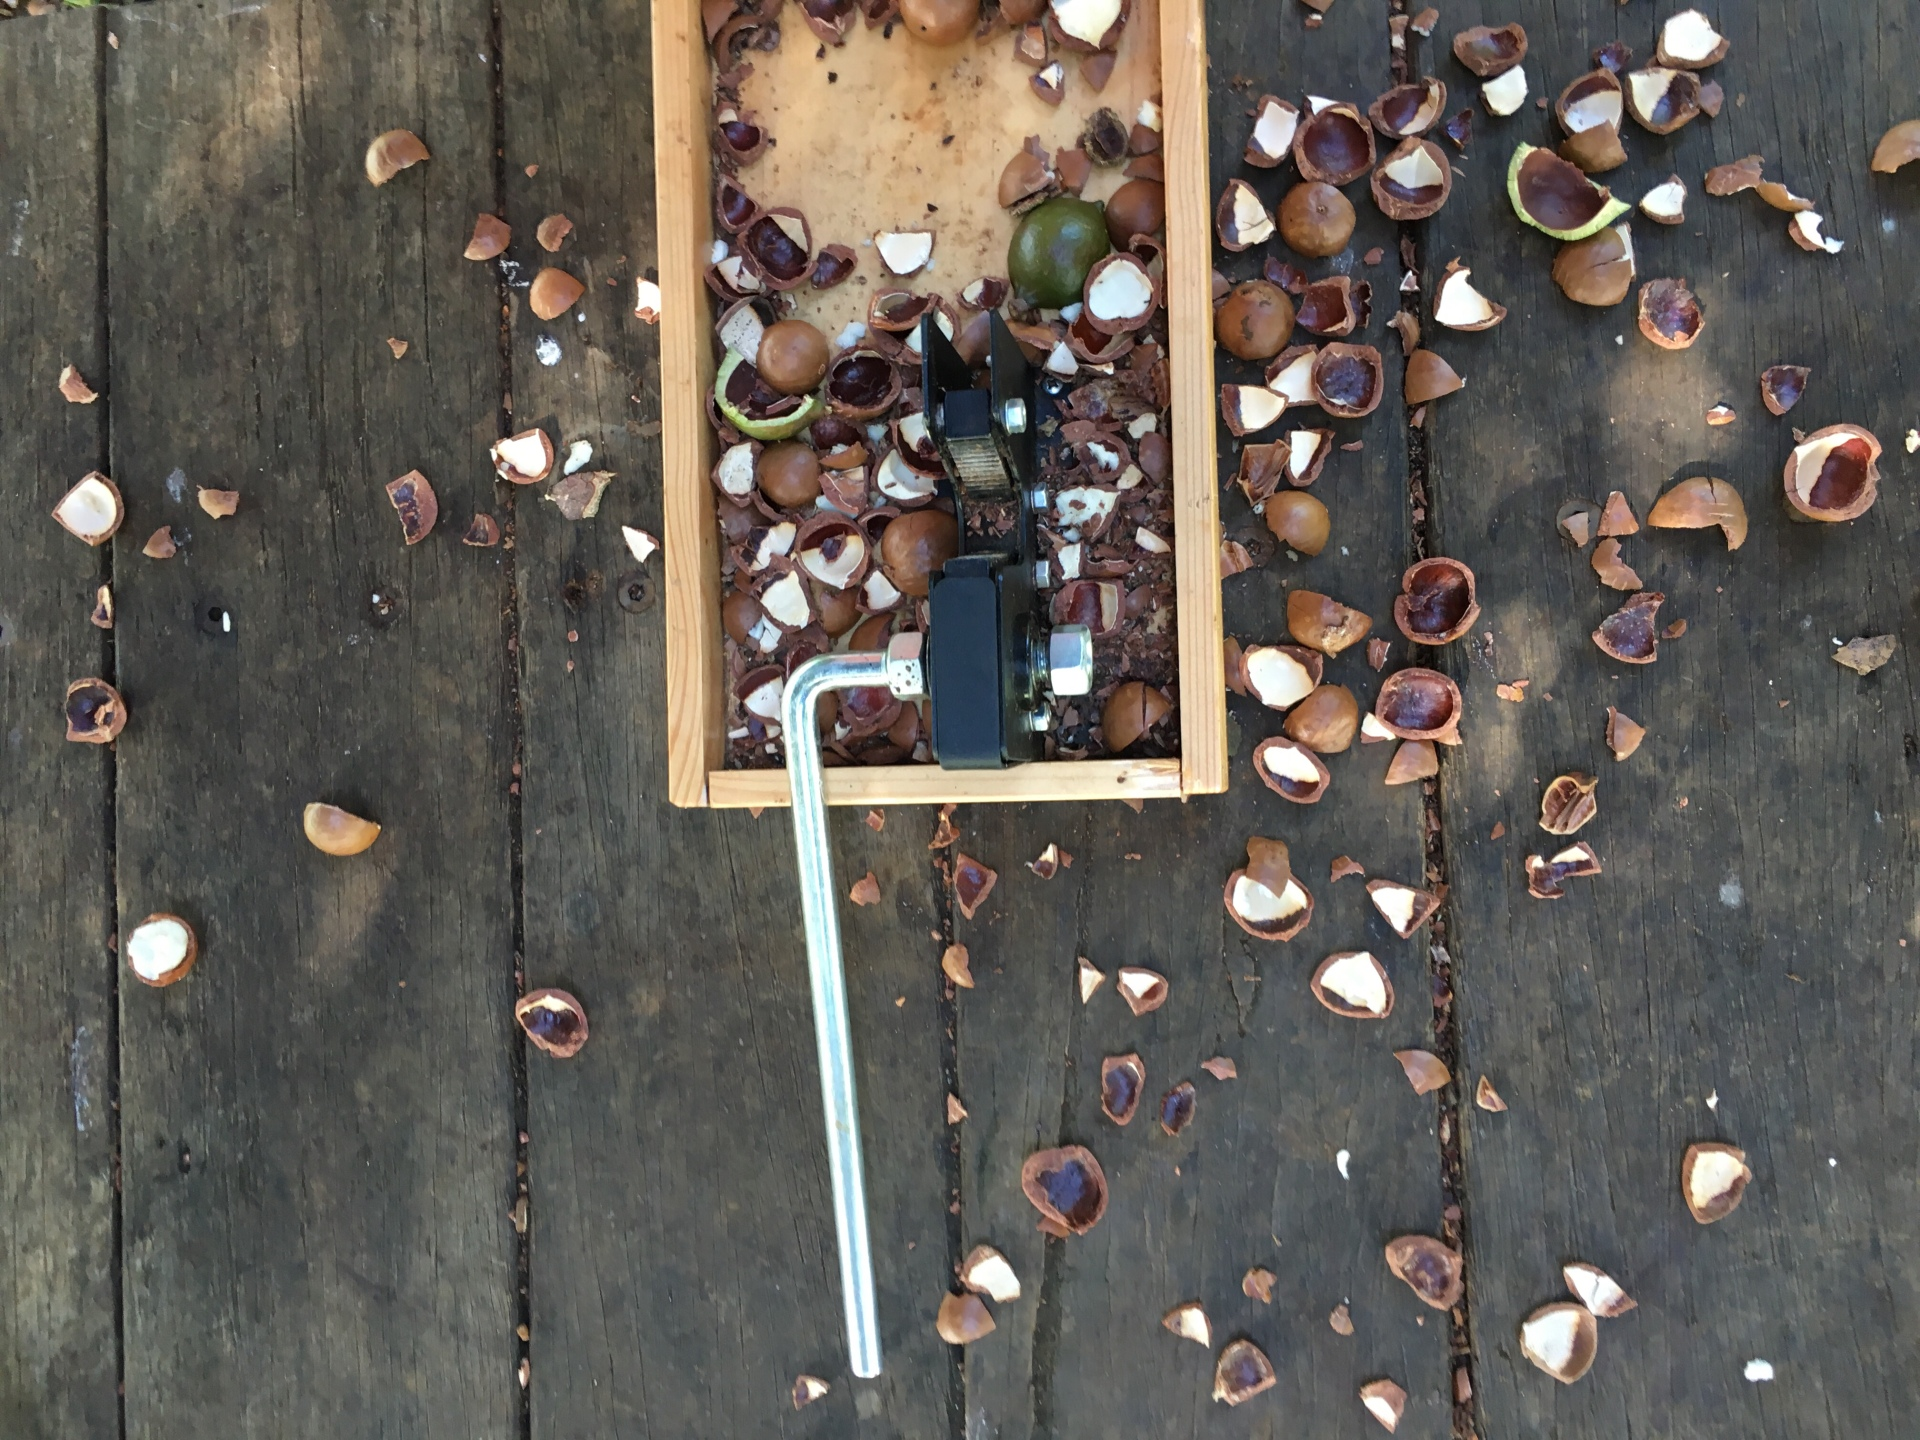 Cracking macadamia nuts at the farm at byron bay